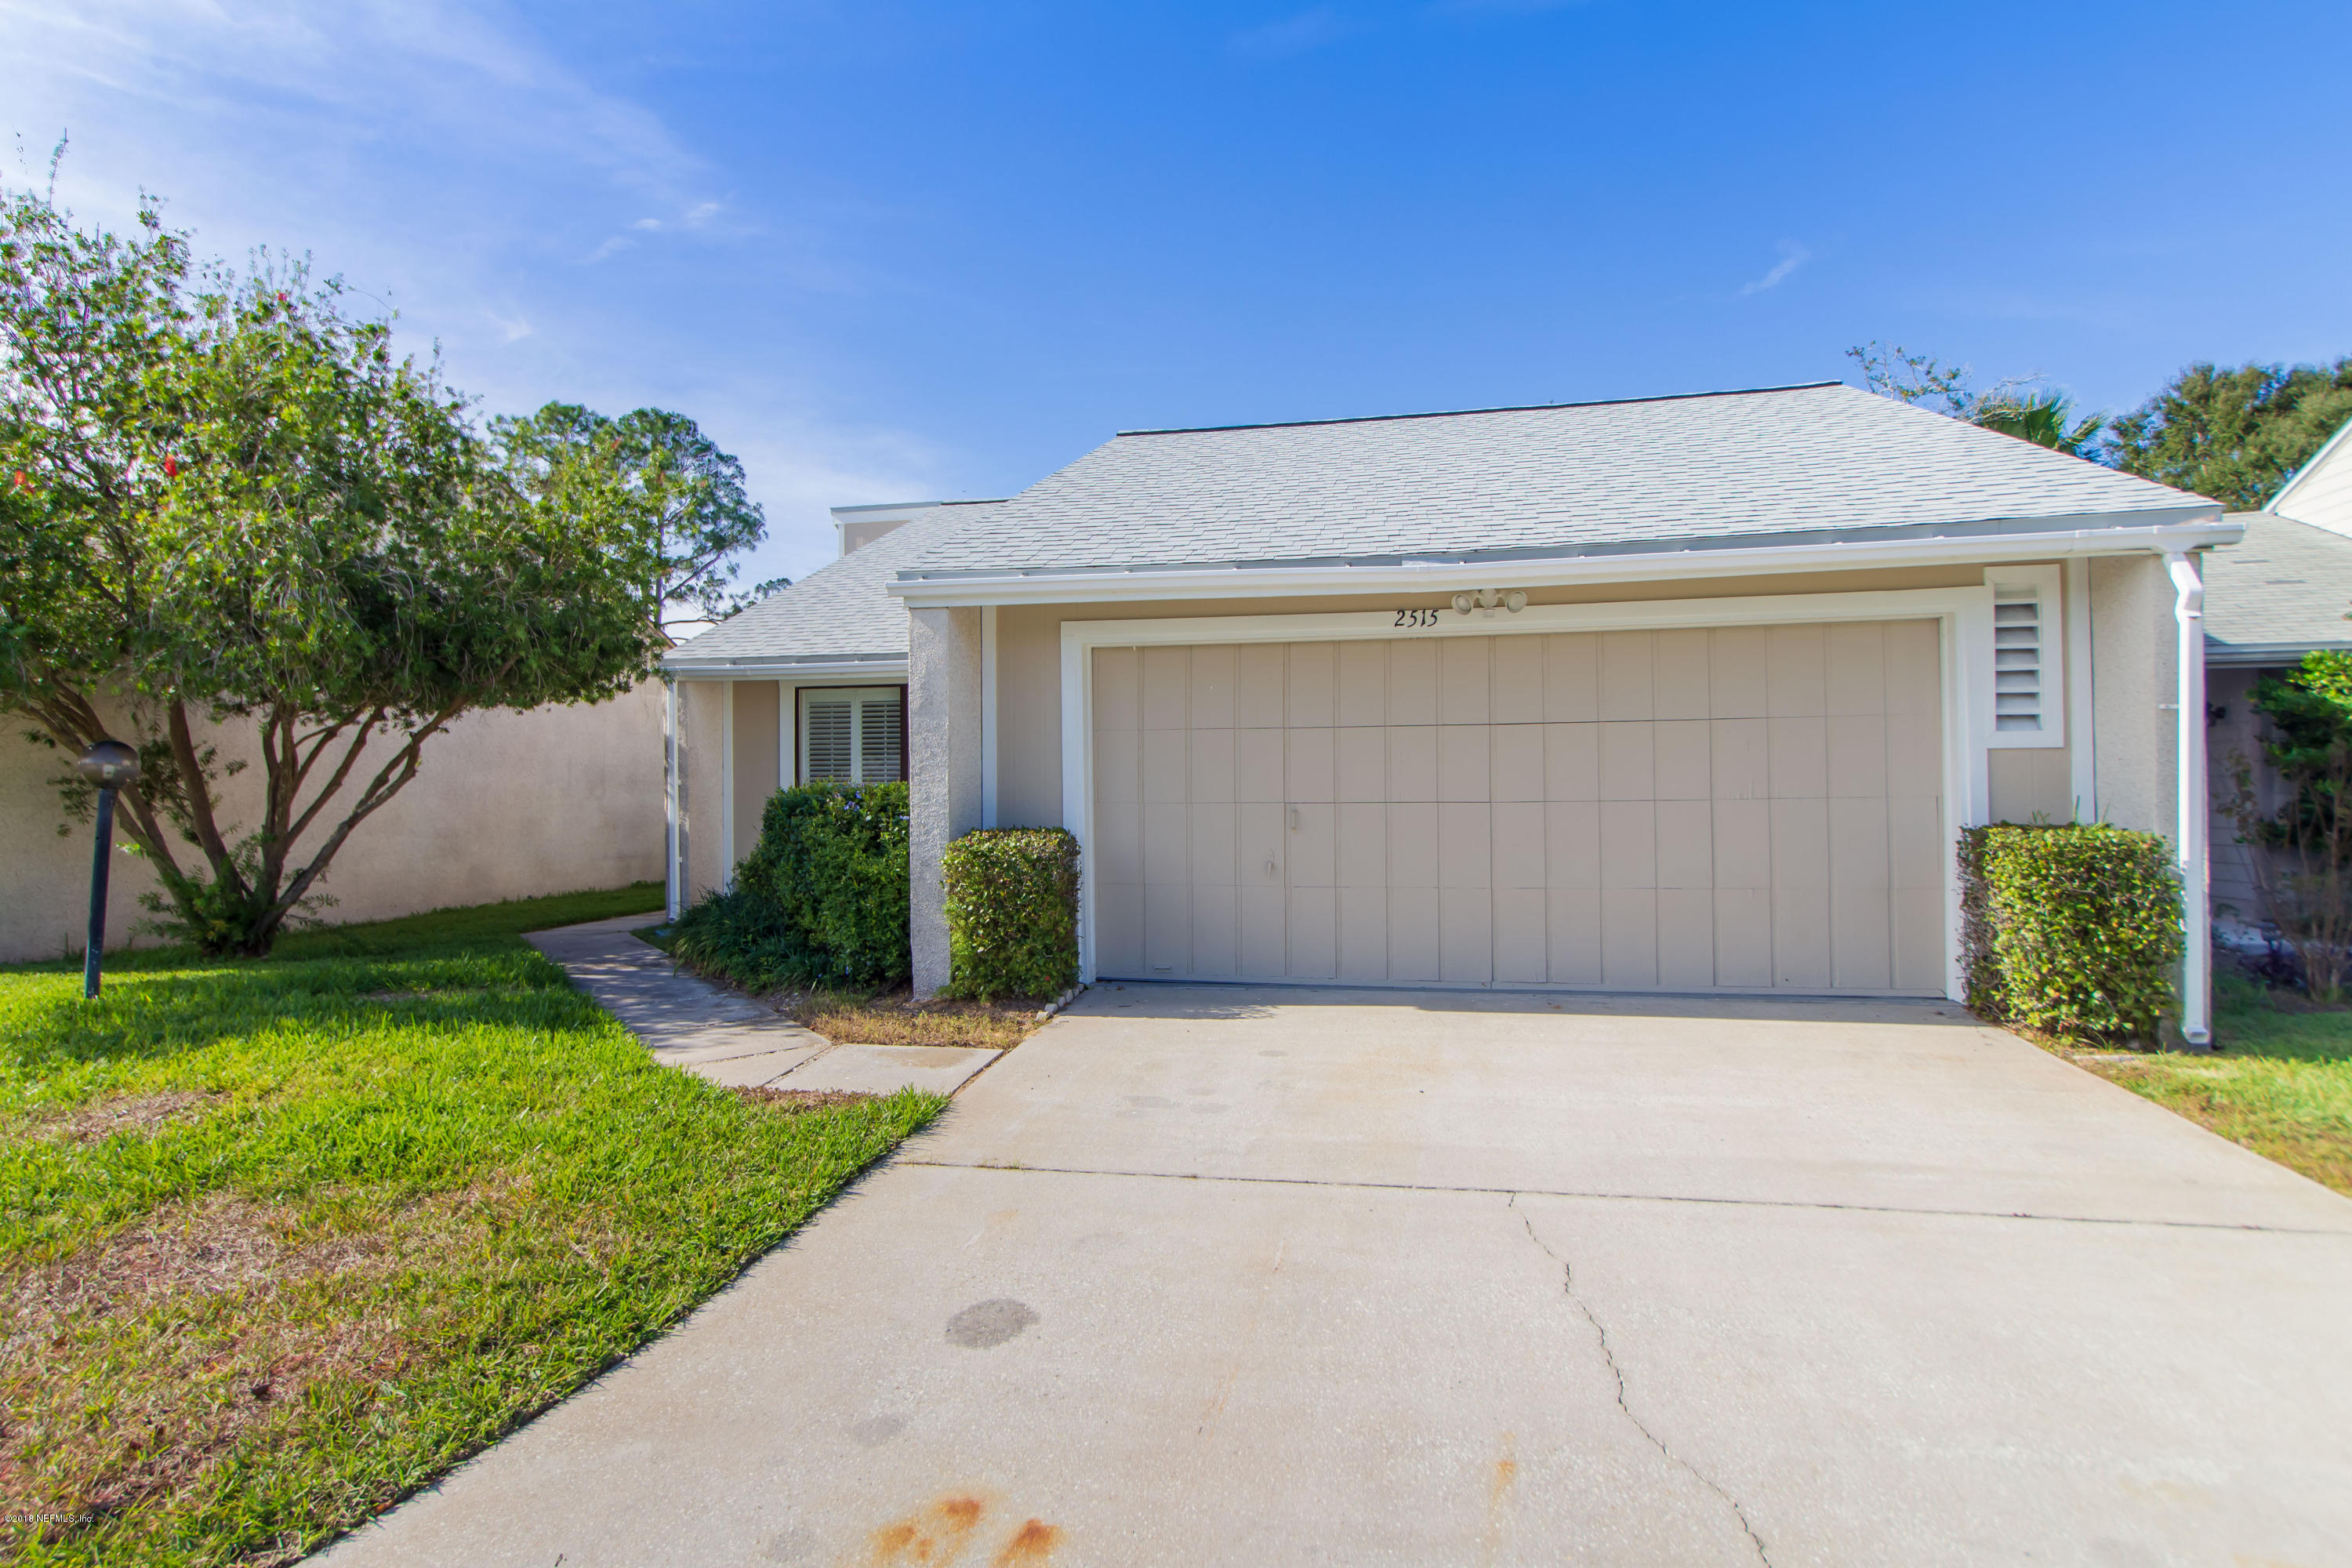 2515 ST MICHEL, PONTE VEDRA BEACH, FLORIDA 32082, 3 Bedrooms Bedrooms, ,2 BathroomsBathrooms,Residential - single family,For sale,ST MICHEL,951010